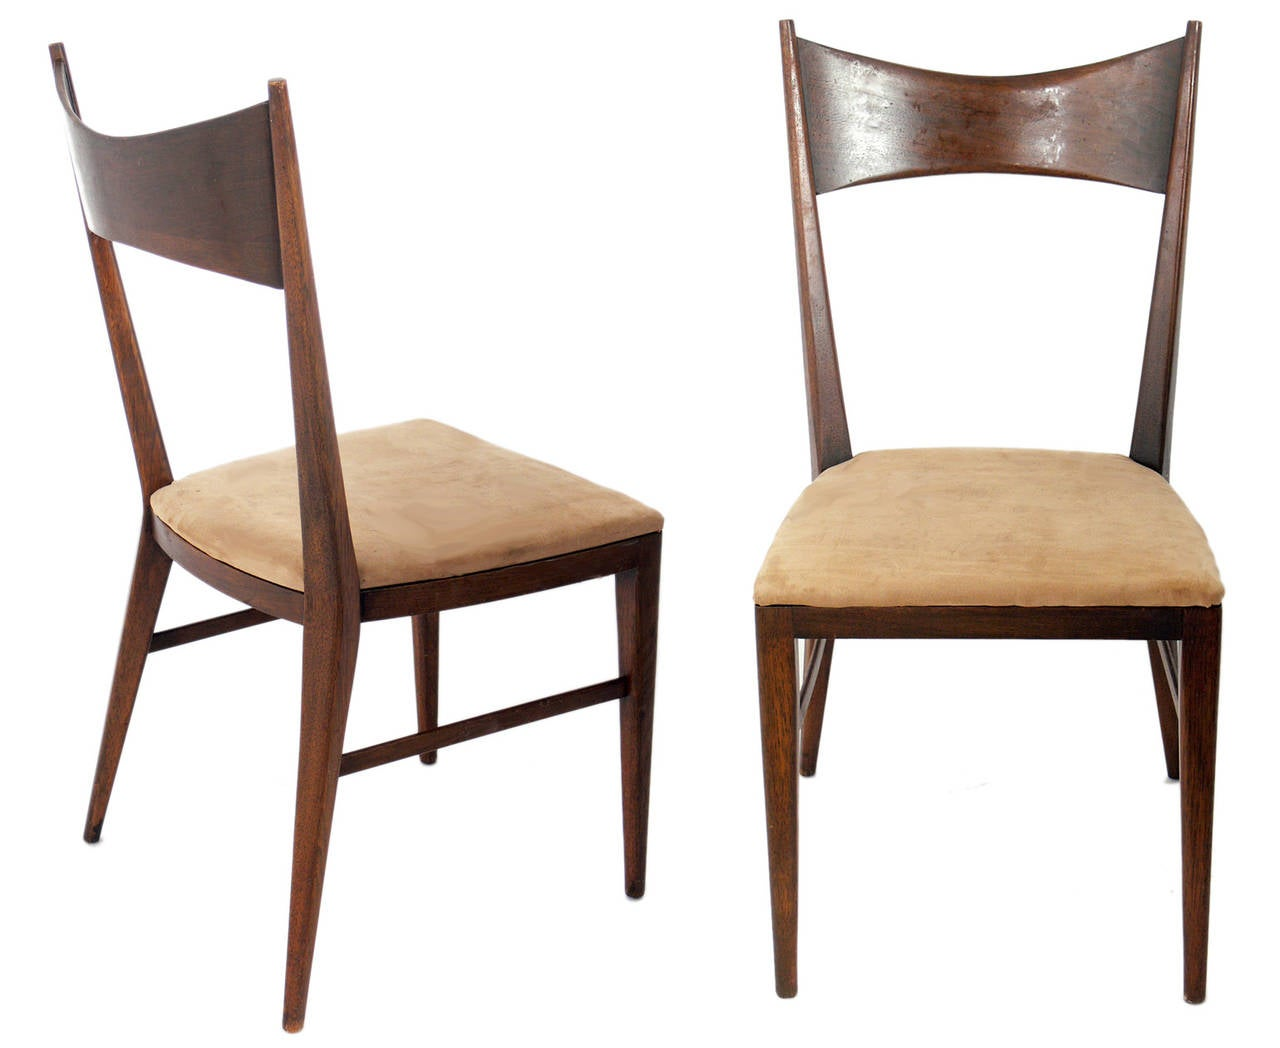 Selection Of Mid Century Modern Desk Chairs For Sale At 1stdibs